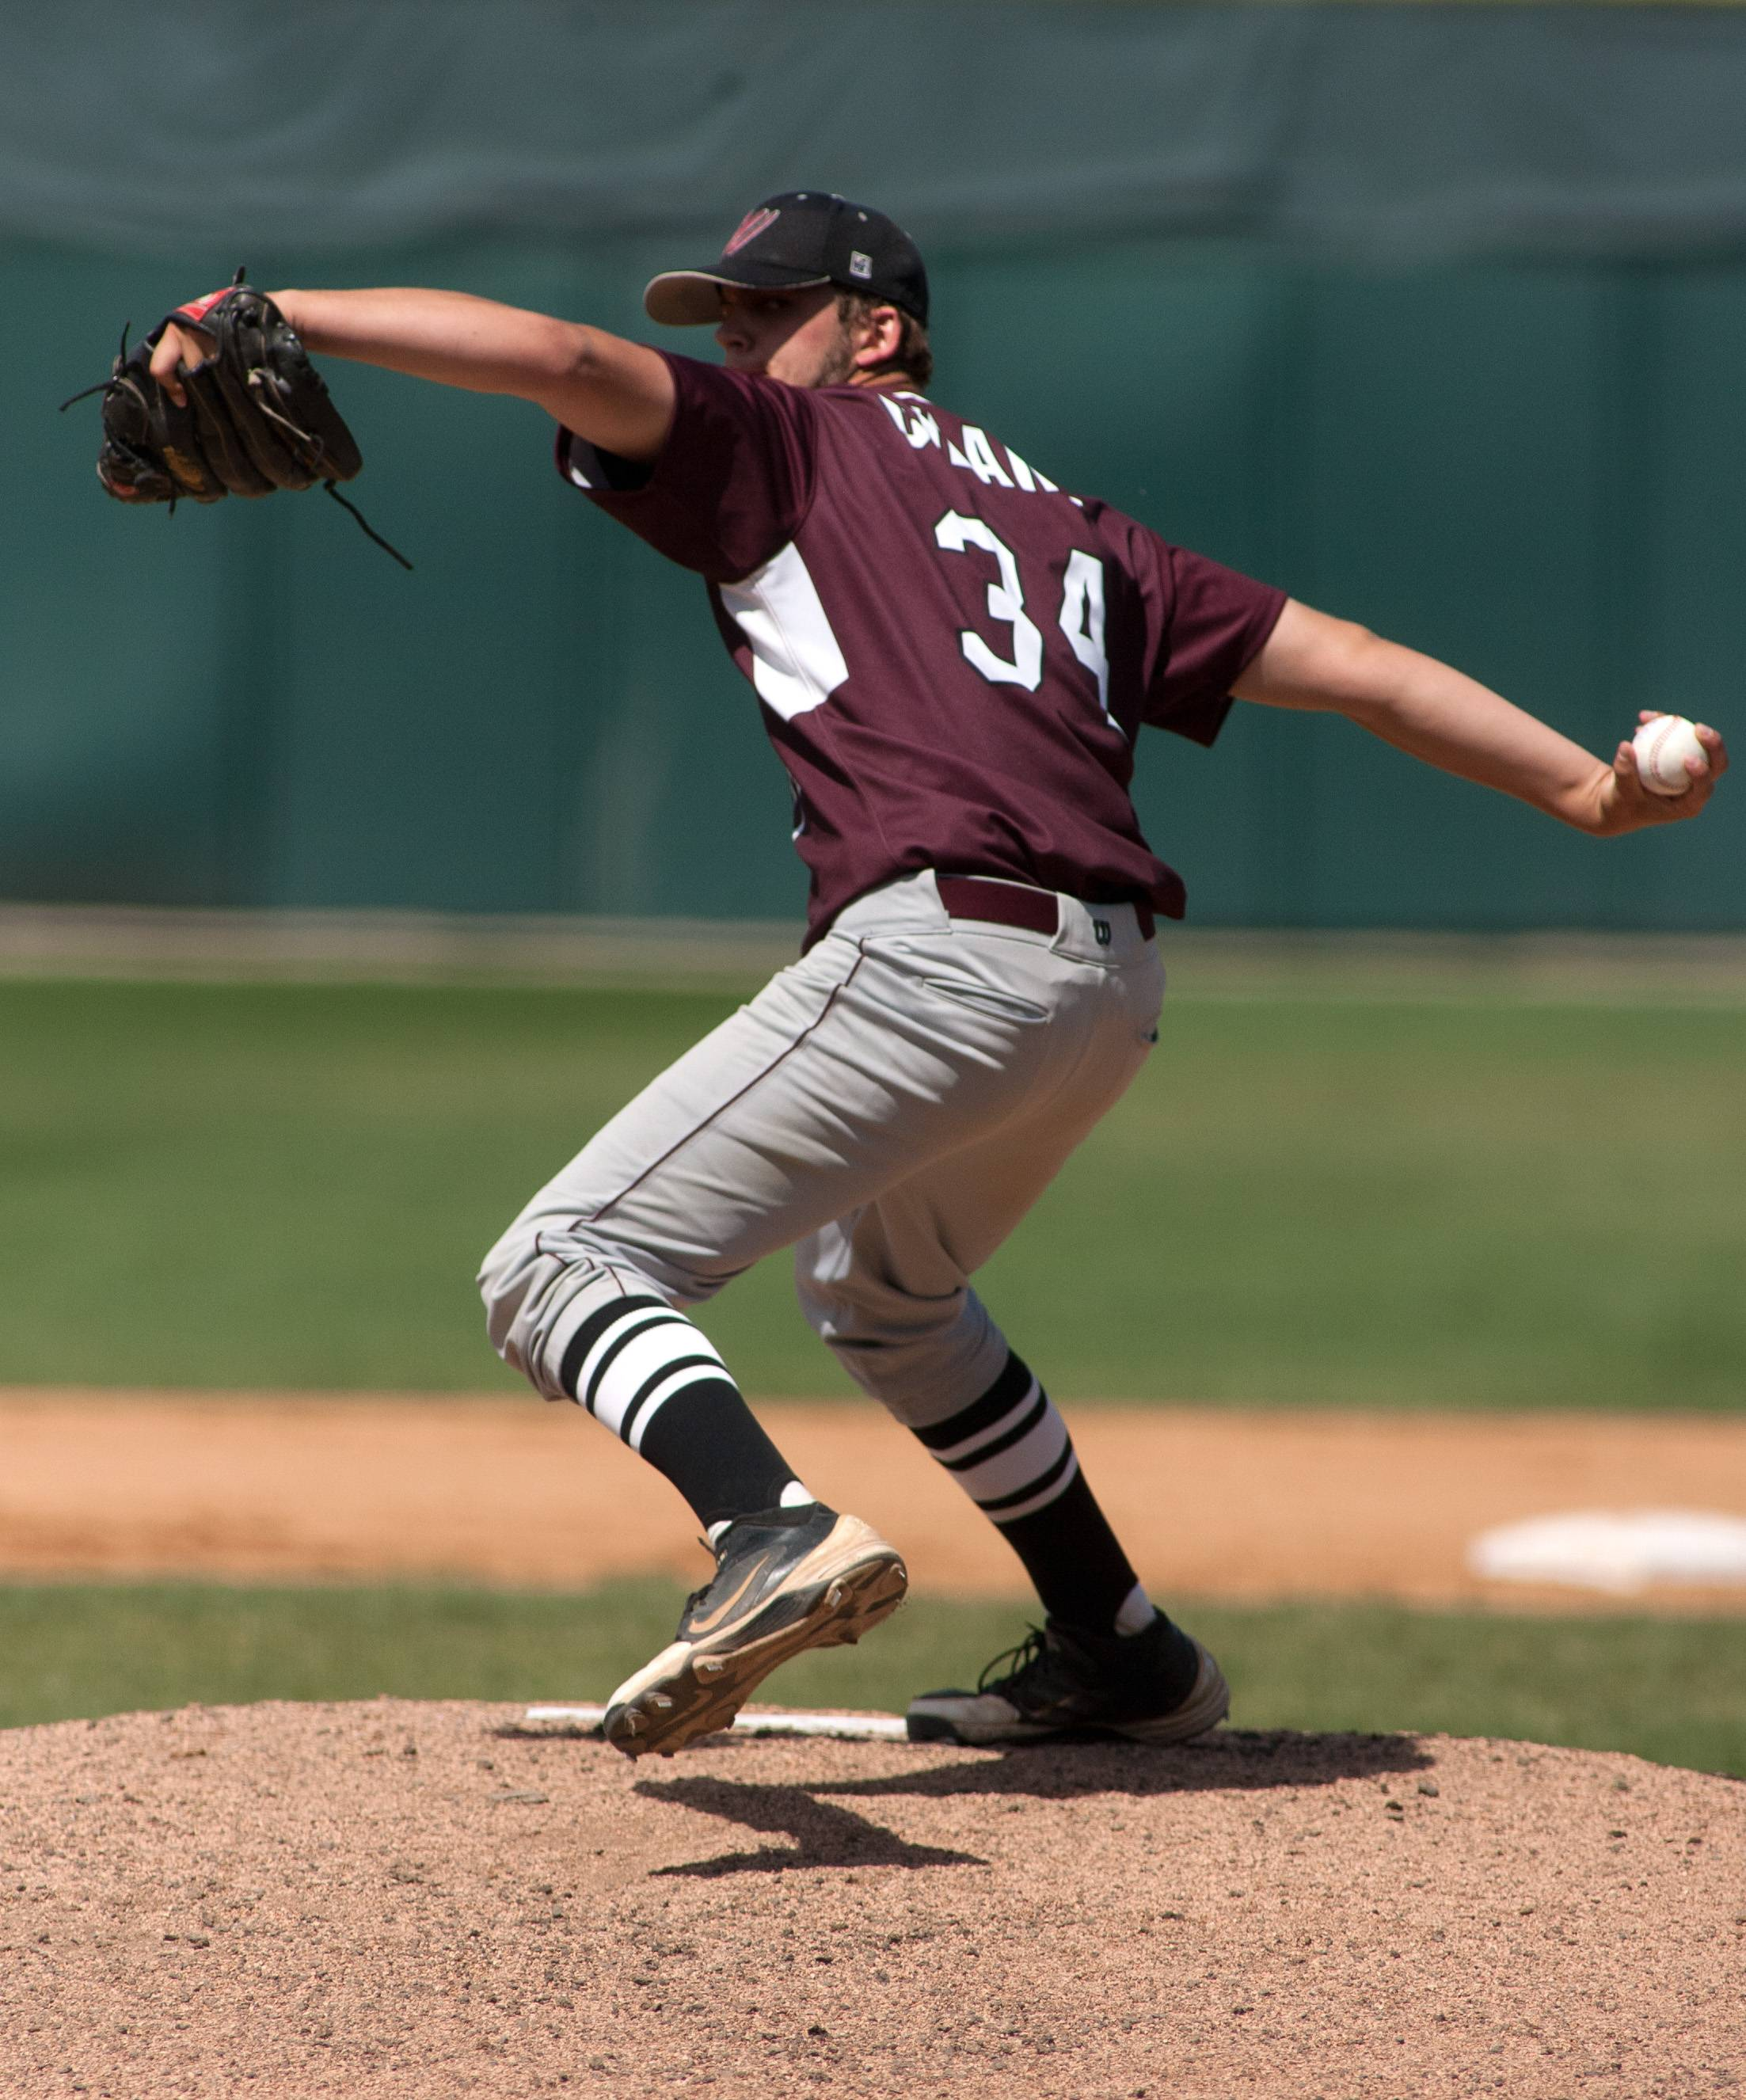 Prairie Ridge's Dustin Thelander delivers against South Elgin during the Class 4A third-place game at Silver Cross Field in Joliet.